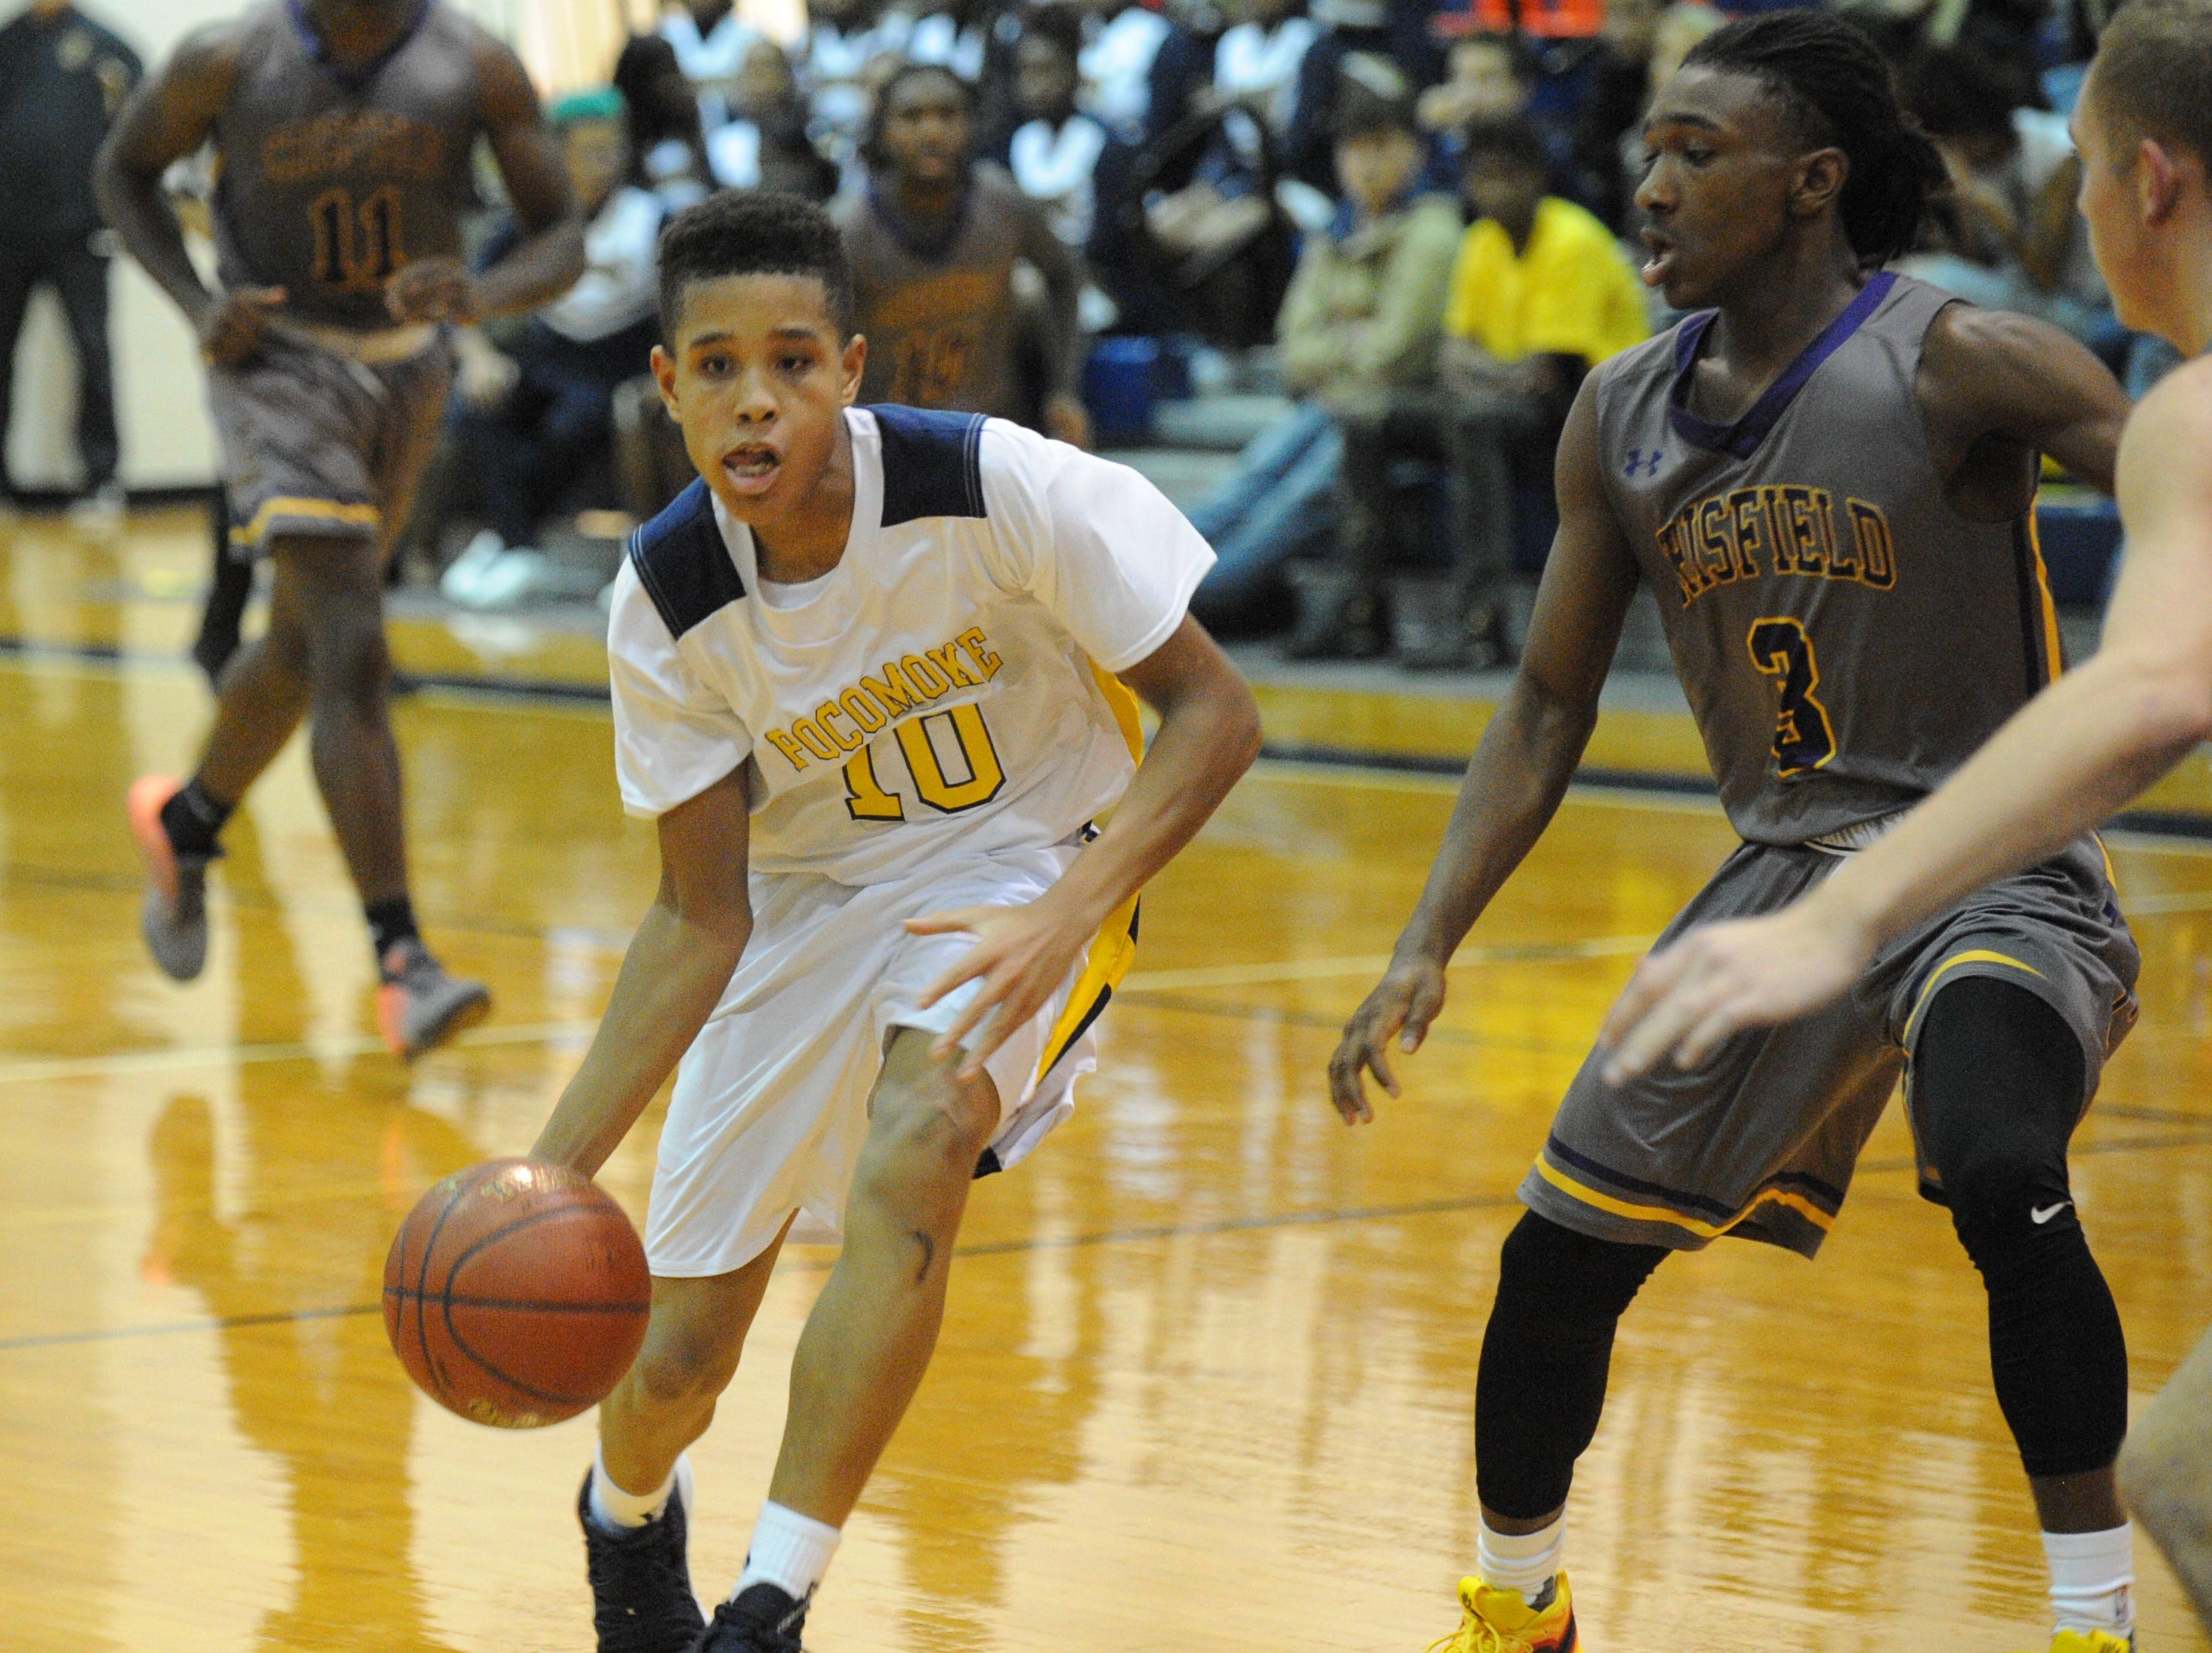 Pocomoke's Charles Finney III dribbles the ball against Crisfield on Tuesday, Dec. 18, 2018. Crisfield won the game, 90-35.